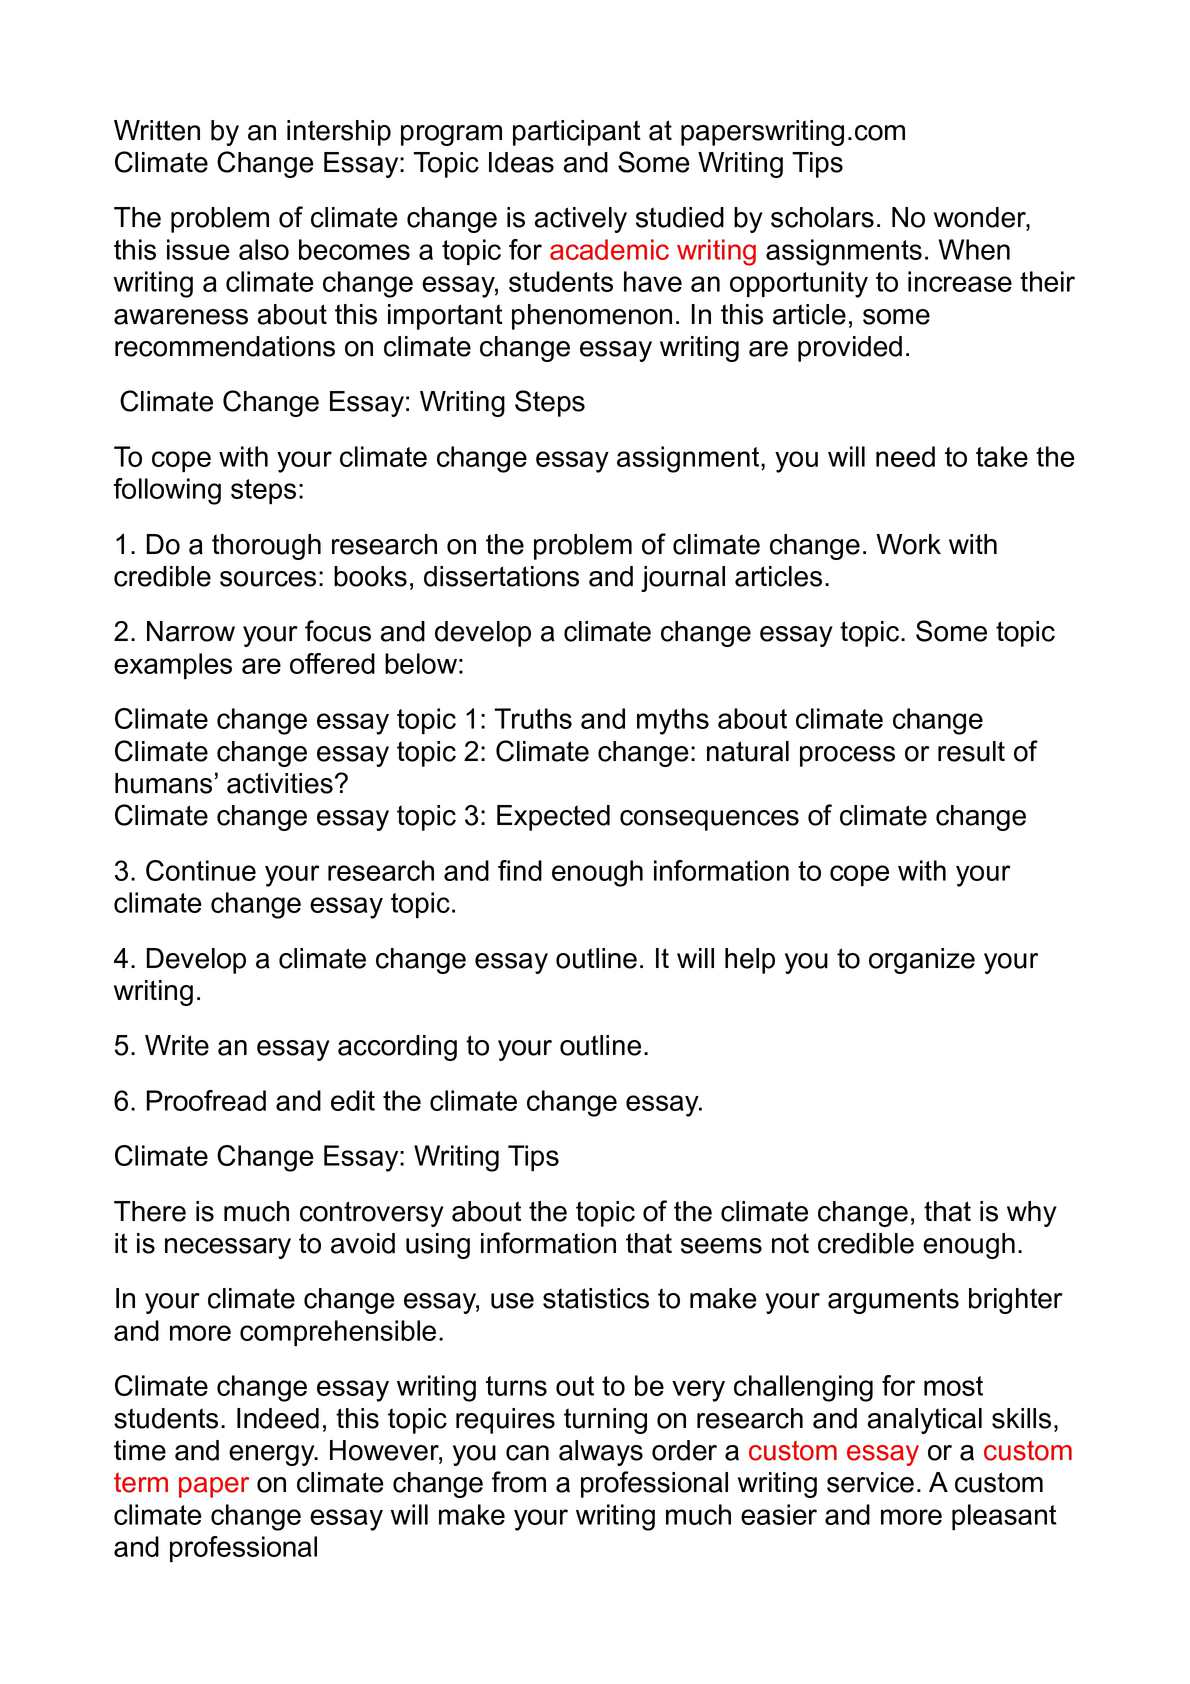 essay on changing climate Climate change essays (examples) filter results by:  essay paper #: 5133735 climate change, divorced from the political rhetoric, is a concrete phenomenon affecting multiple systems the economic and social ramifications of climate change are ancillary to its measurable physical effects however, the measurable physical effects vary.